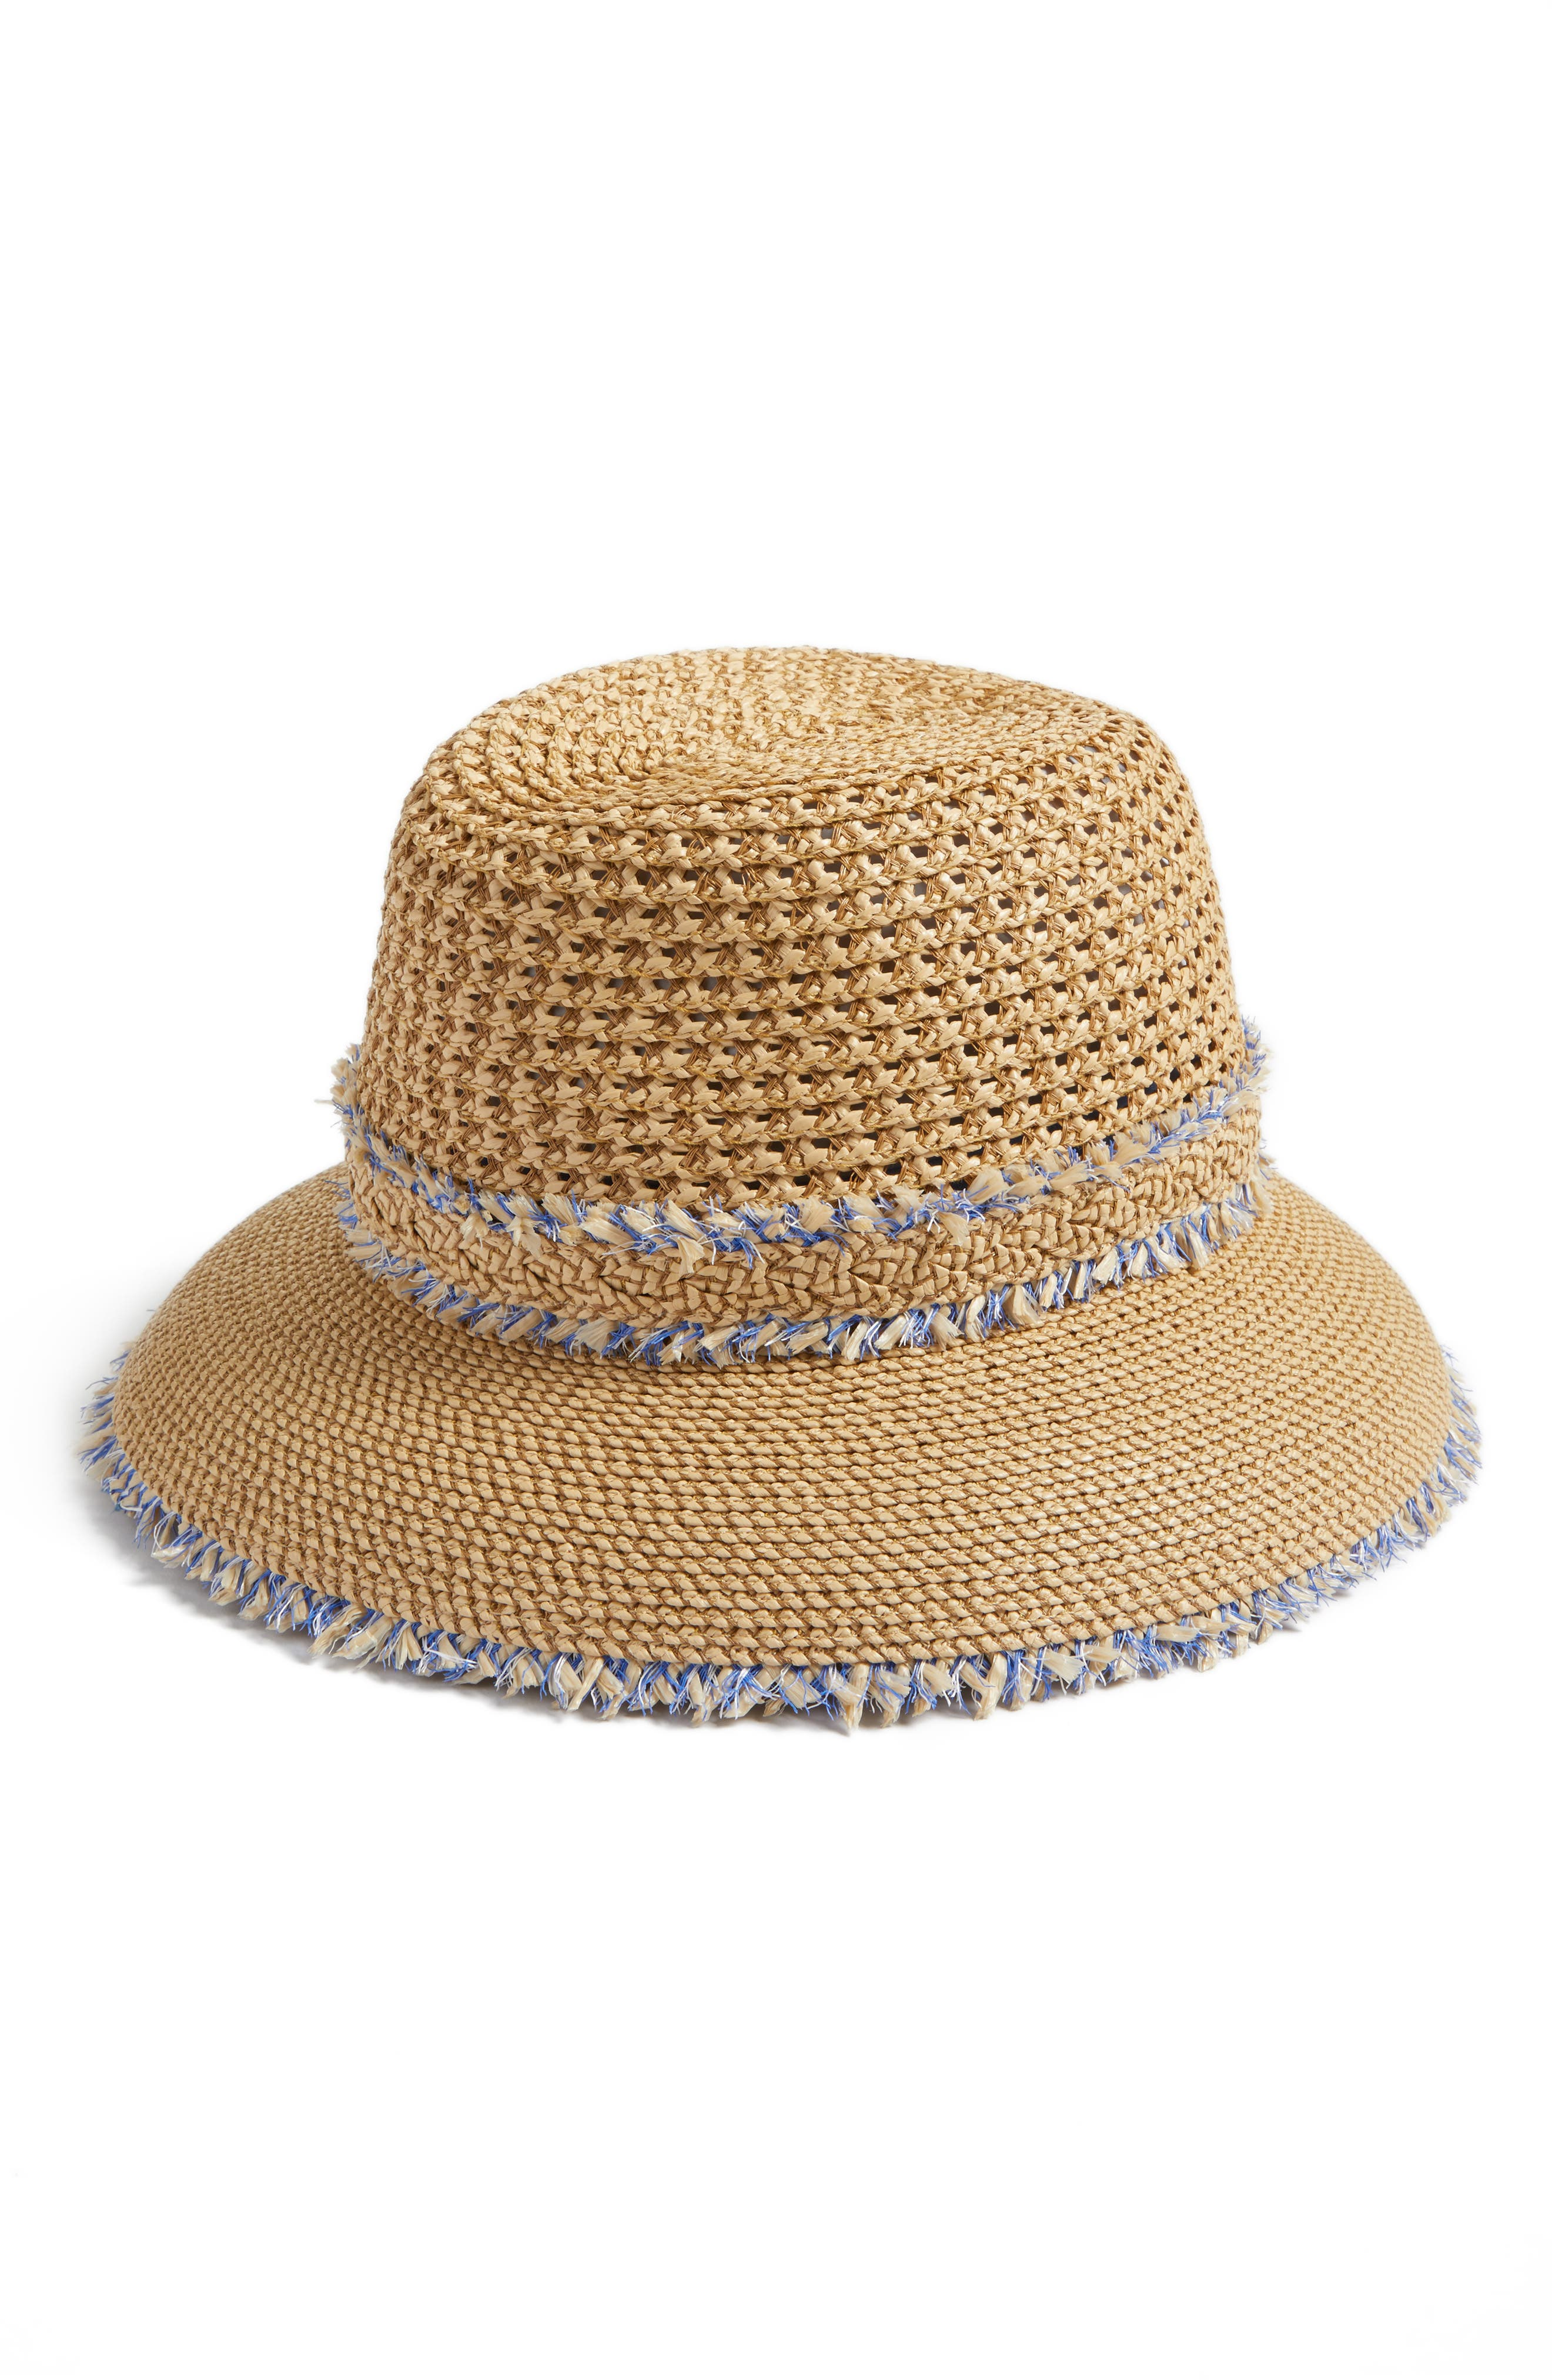 Lulu Squishee<sup>®</sup> Straw Hat,                         Main,                         color, Peanut Mix